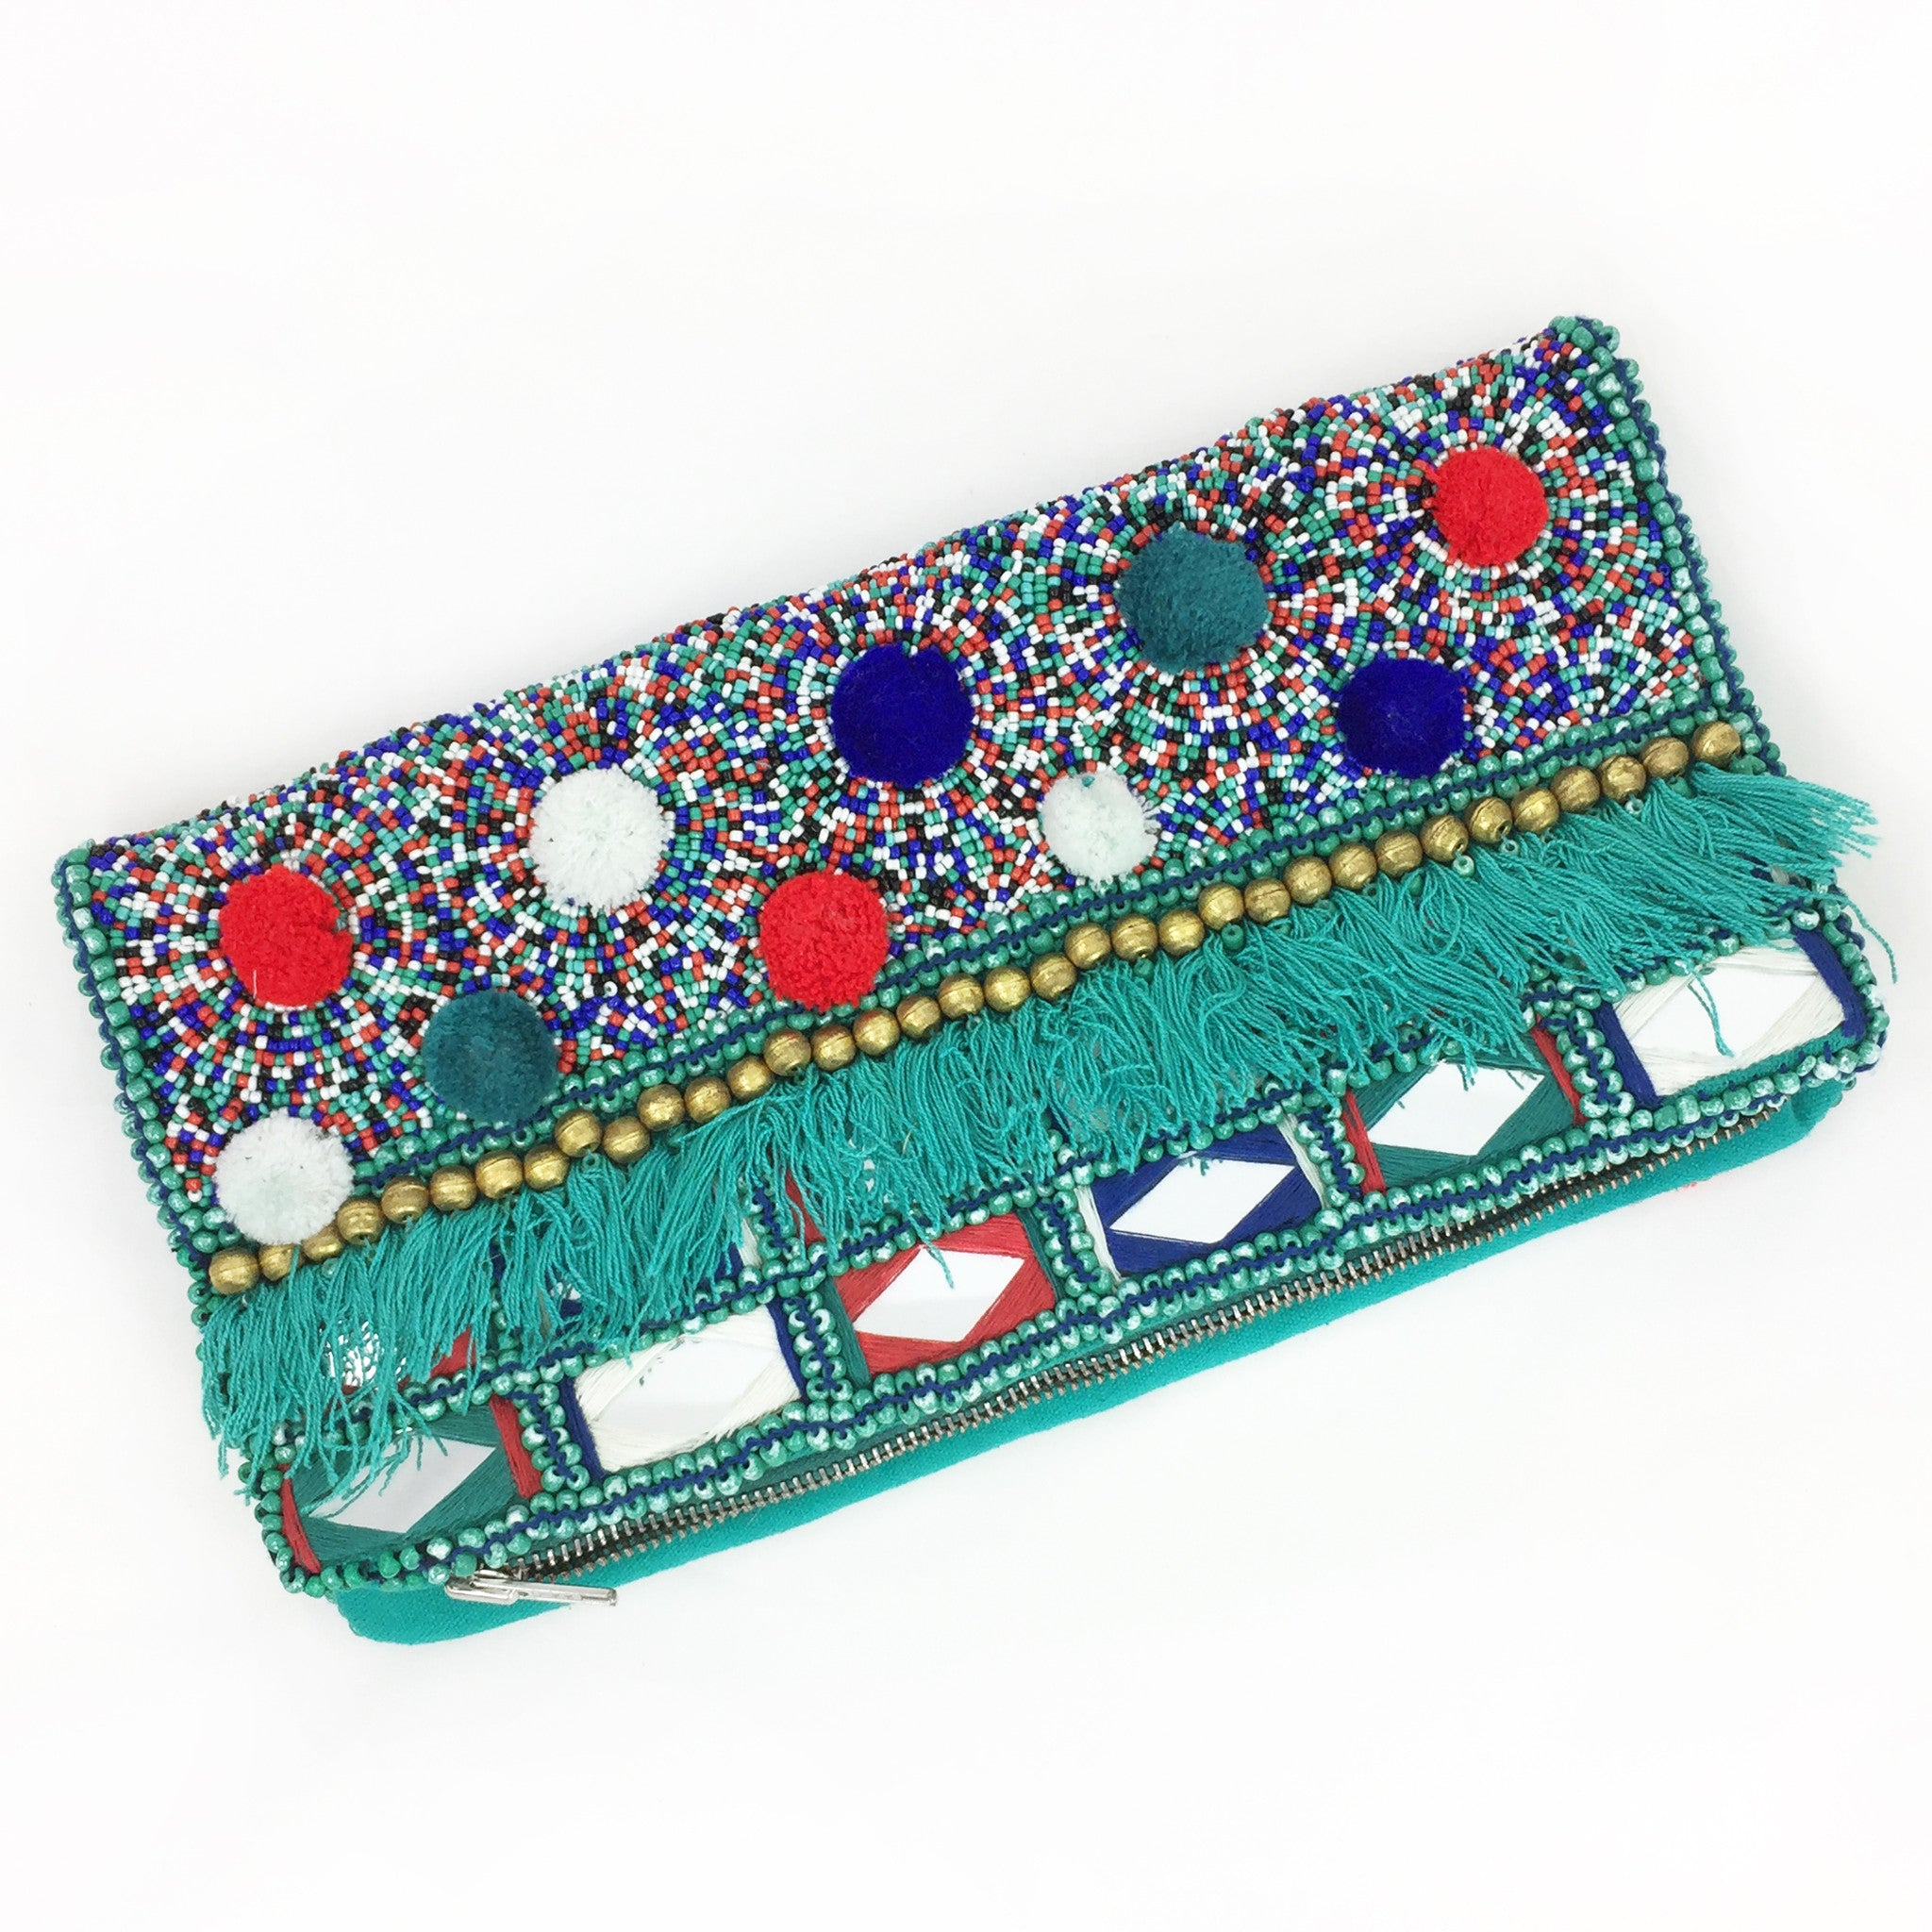 Beaded Envelop Clutch - Turquoise